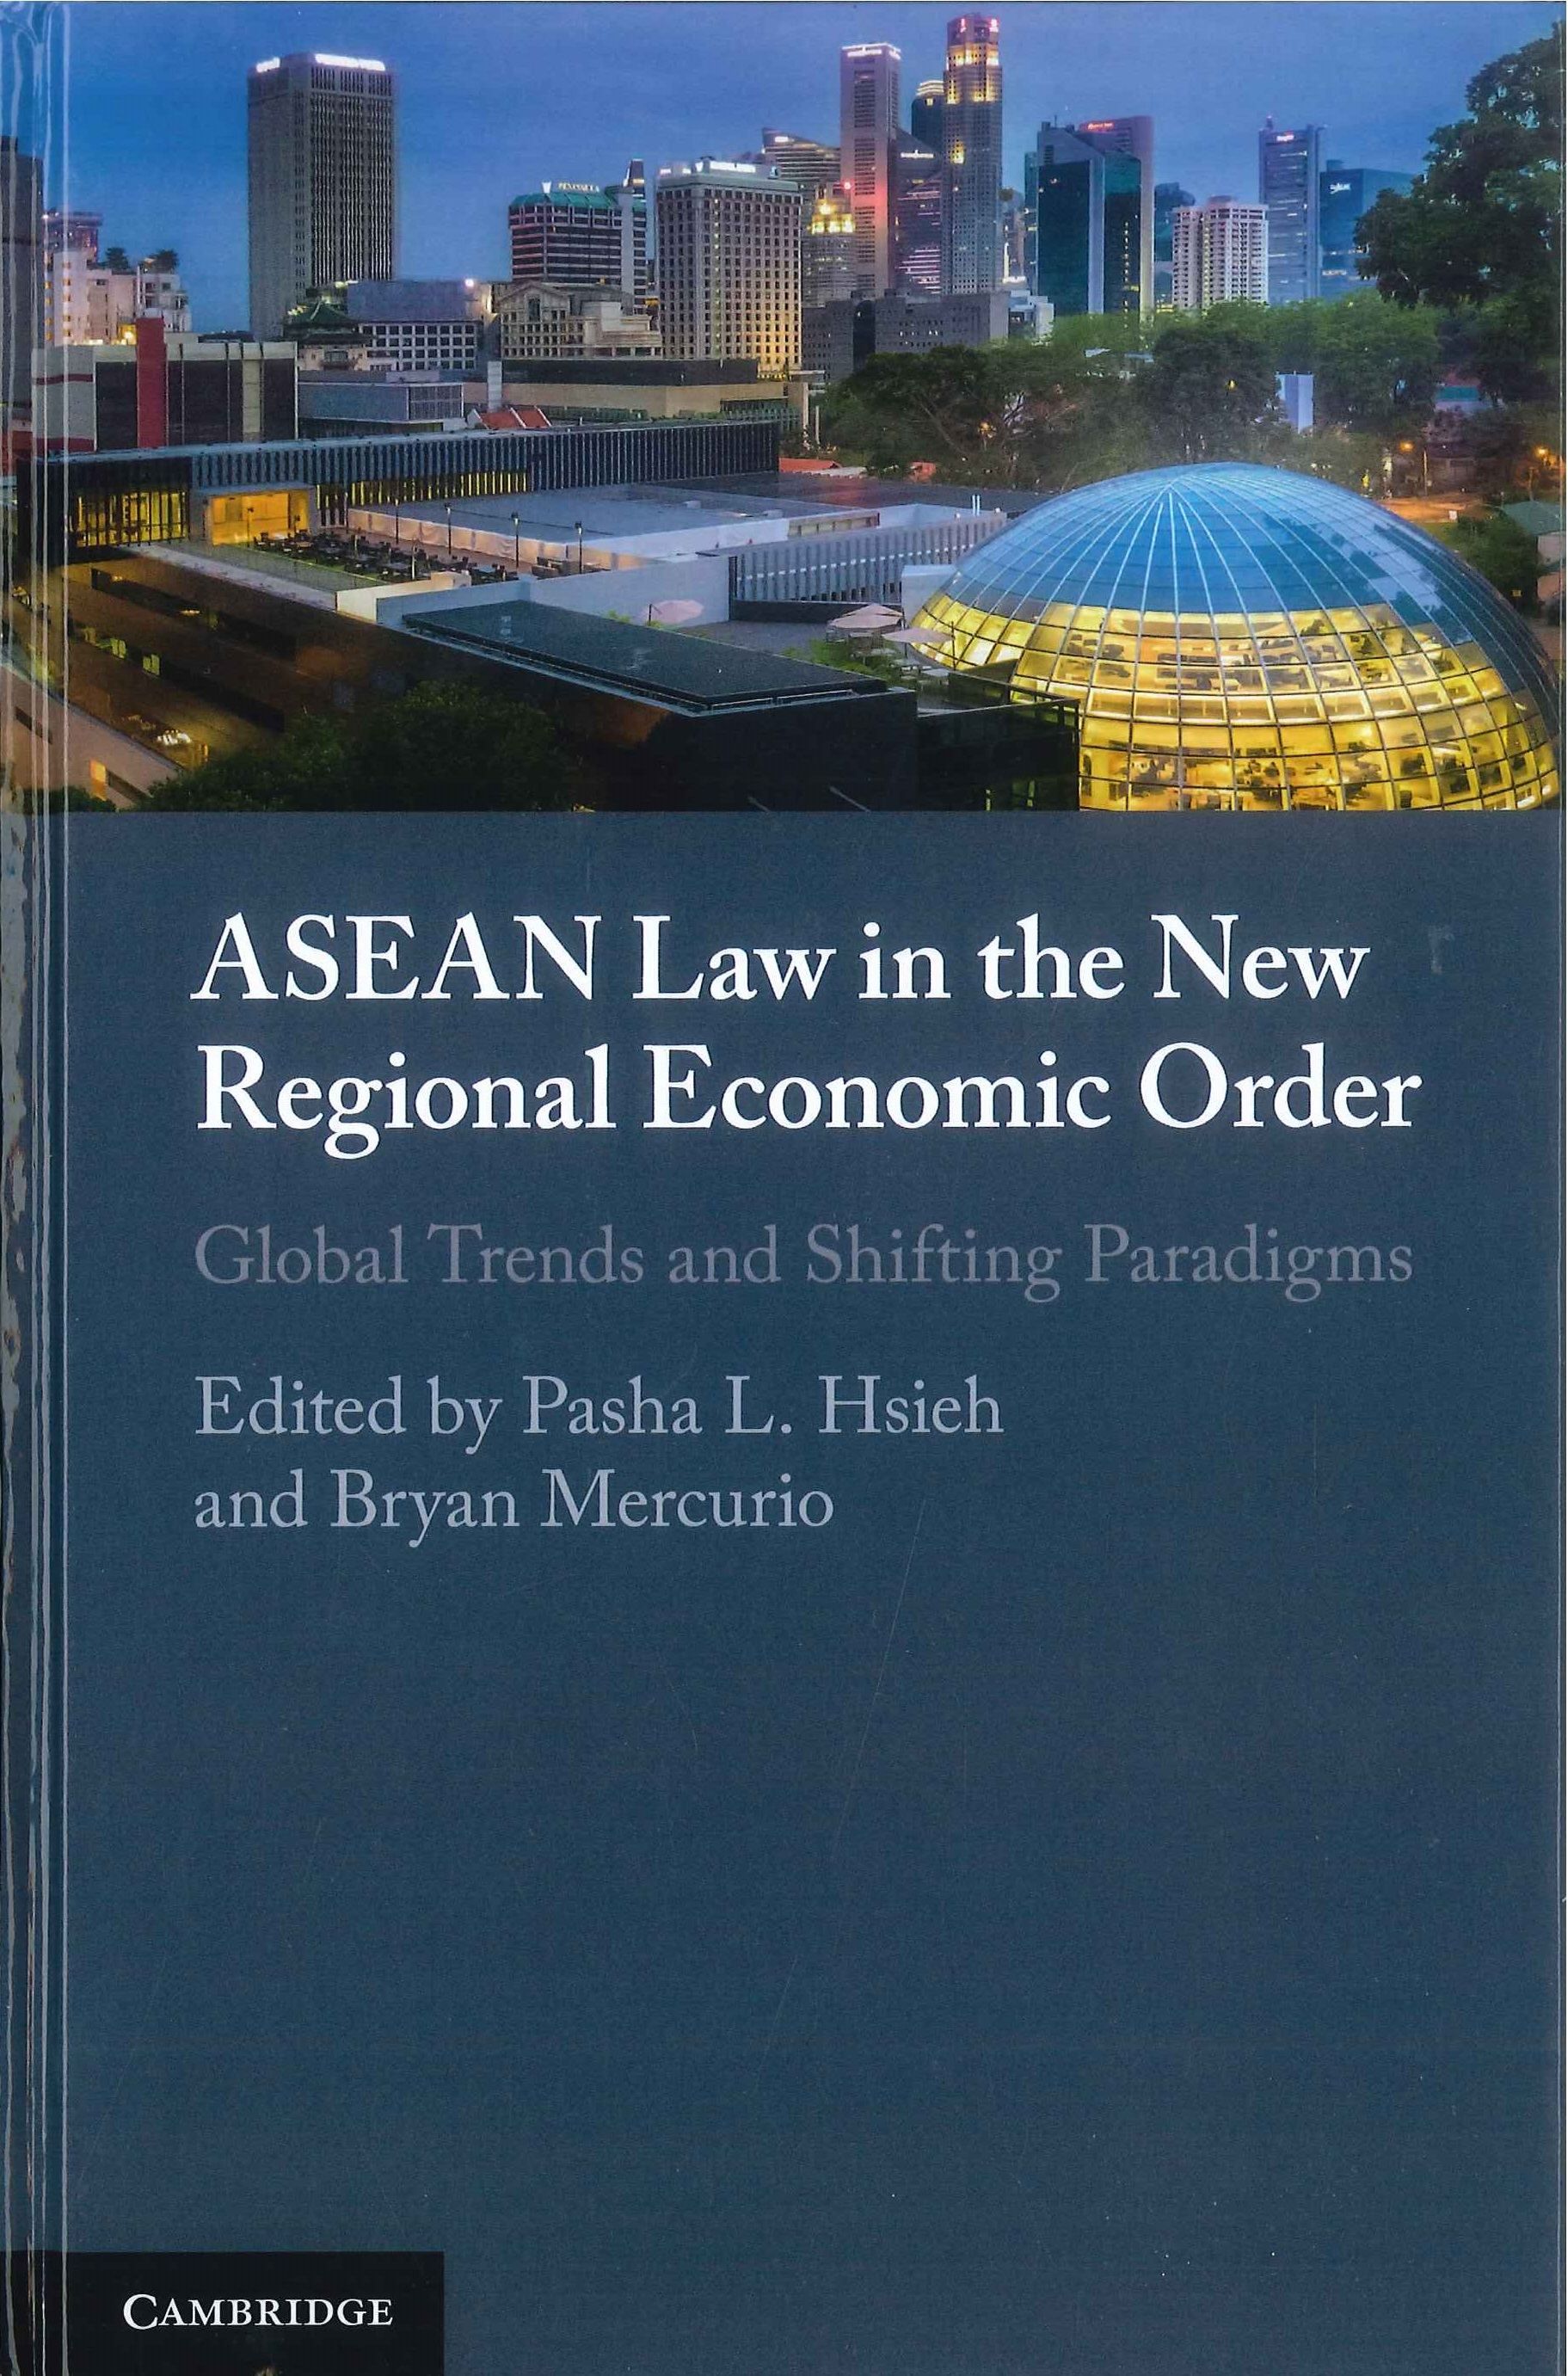 ASEAN law in the new regional economic order:global trends and shifting paradigms